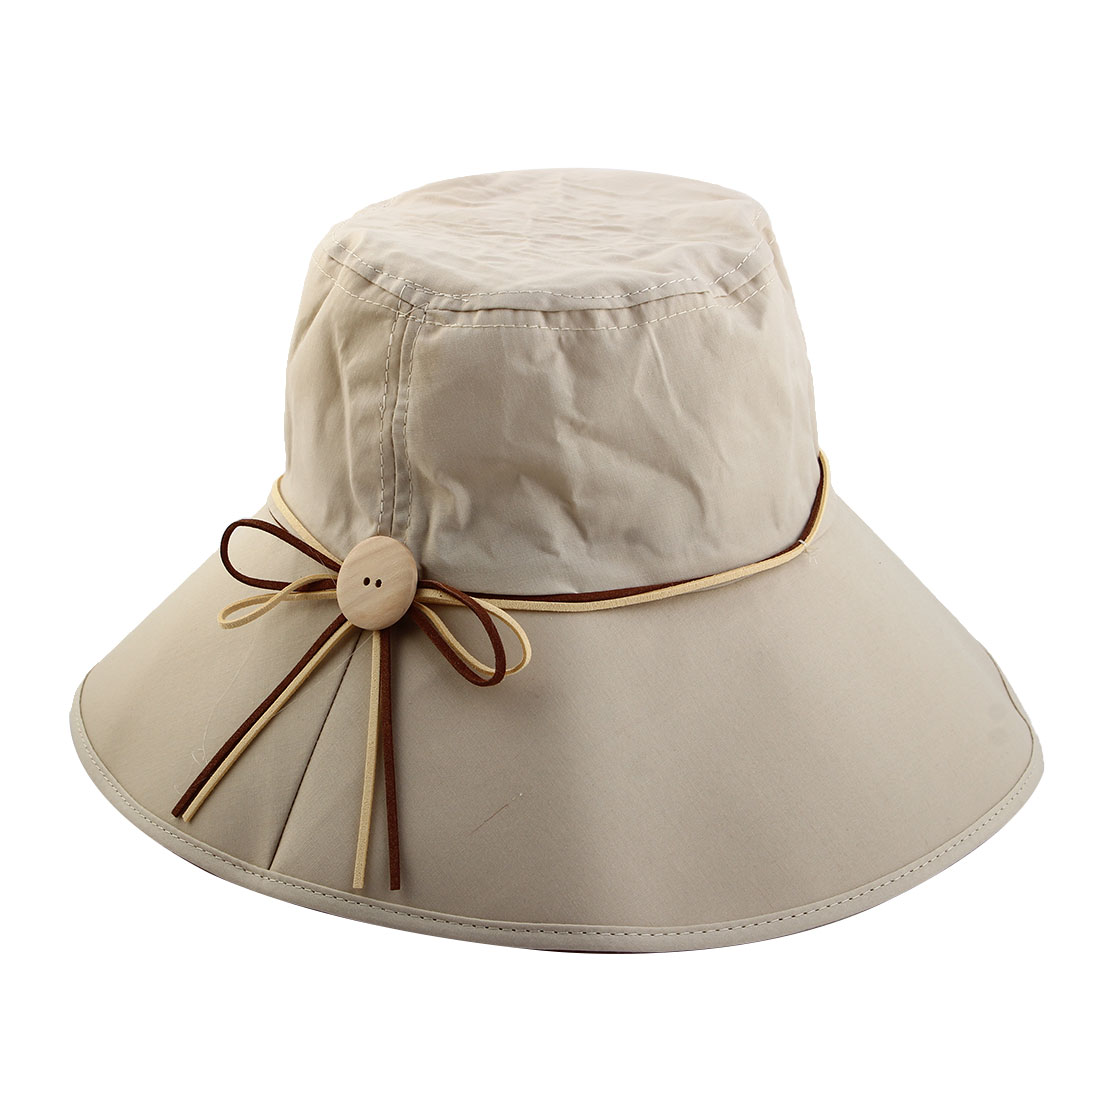 Woman Bowknot Wooden Buckle Decor Adjustable Wide Brim Summer Beach Cap Sun Hat Khaki